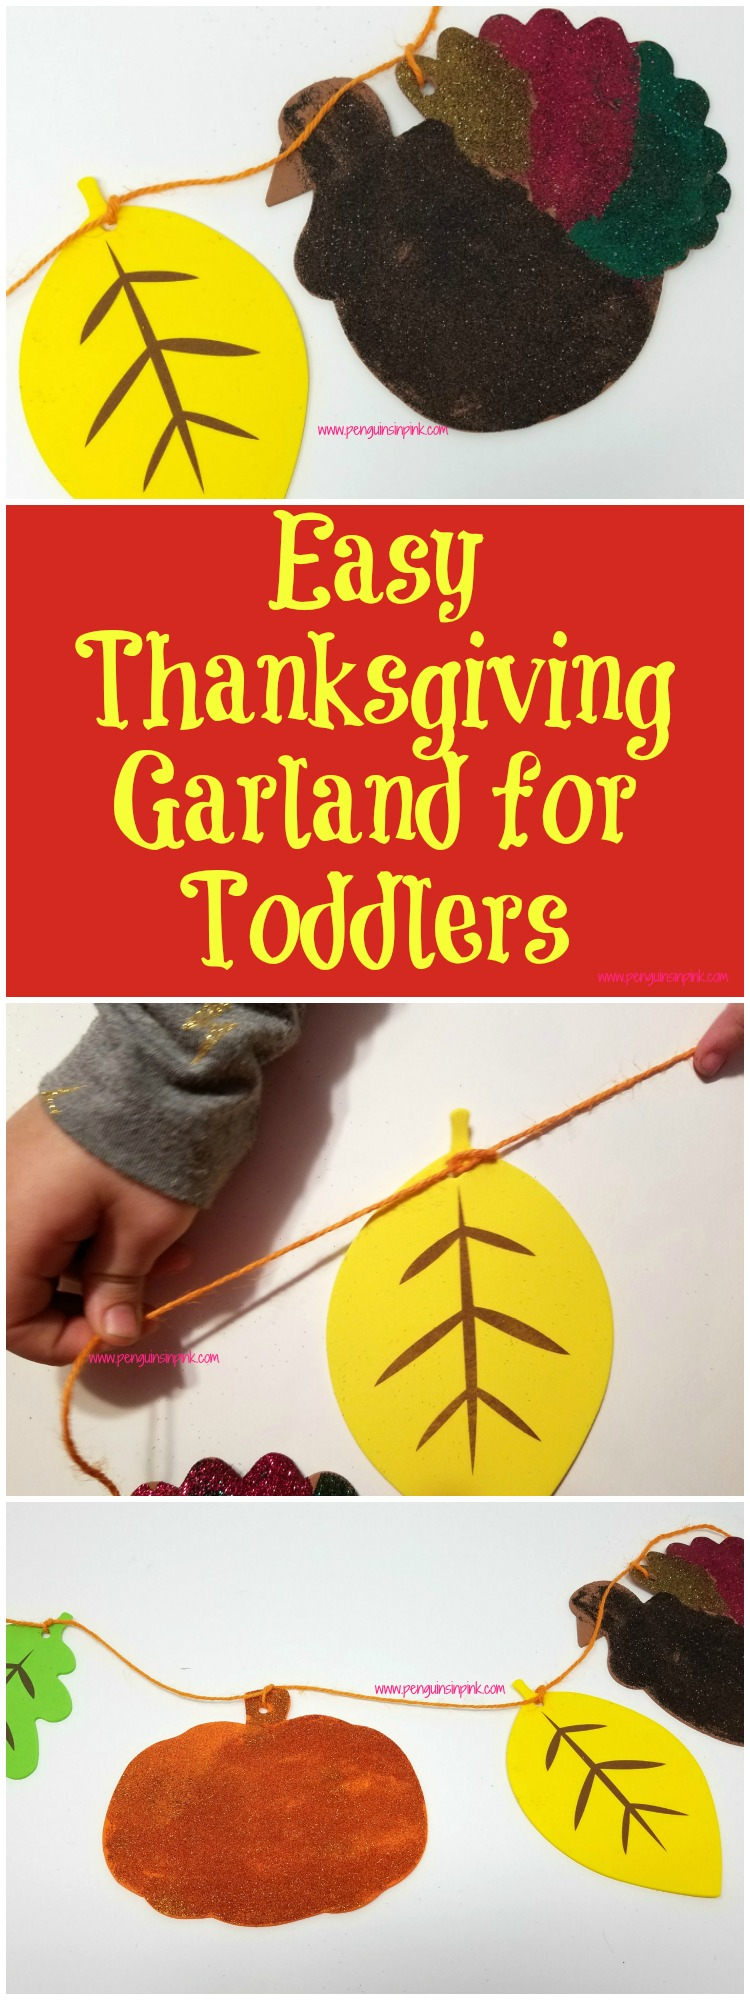 Your little ones will love making this fun and festive Easy Thanksgiving Garland for Toddlers. Not only is it super cute but it allows them to practice fine motor skills, math skills, and life skills.